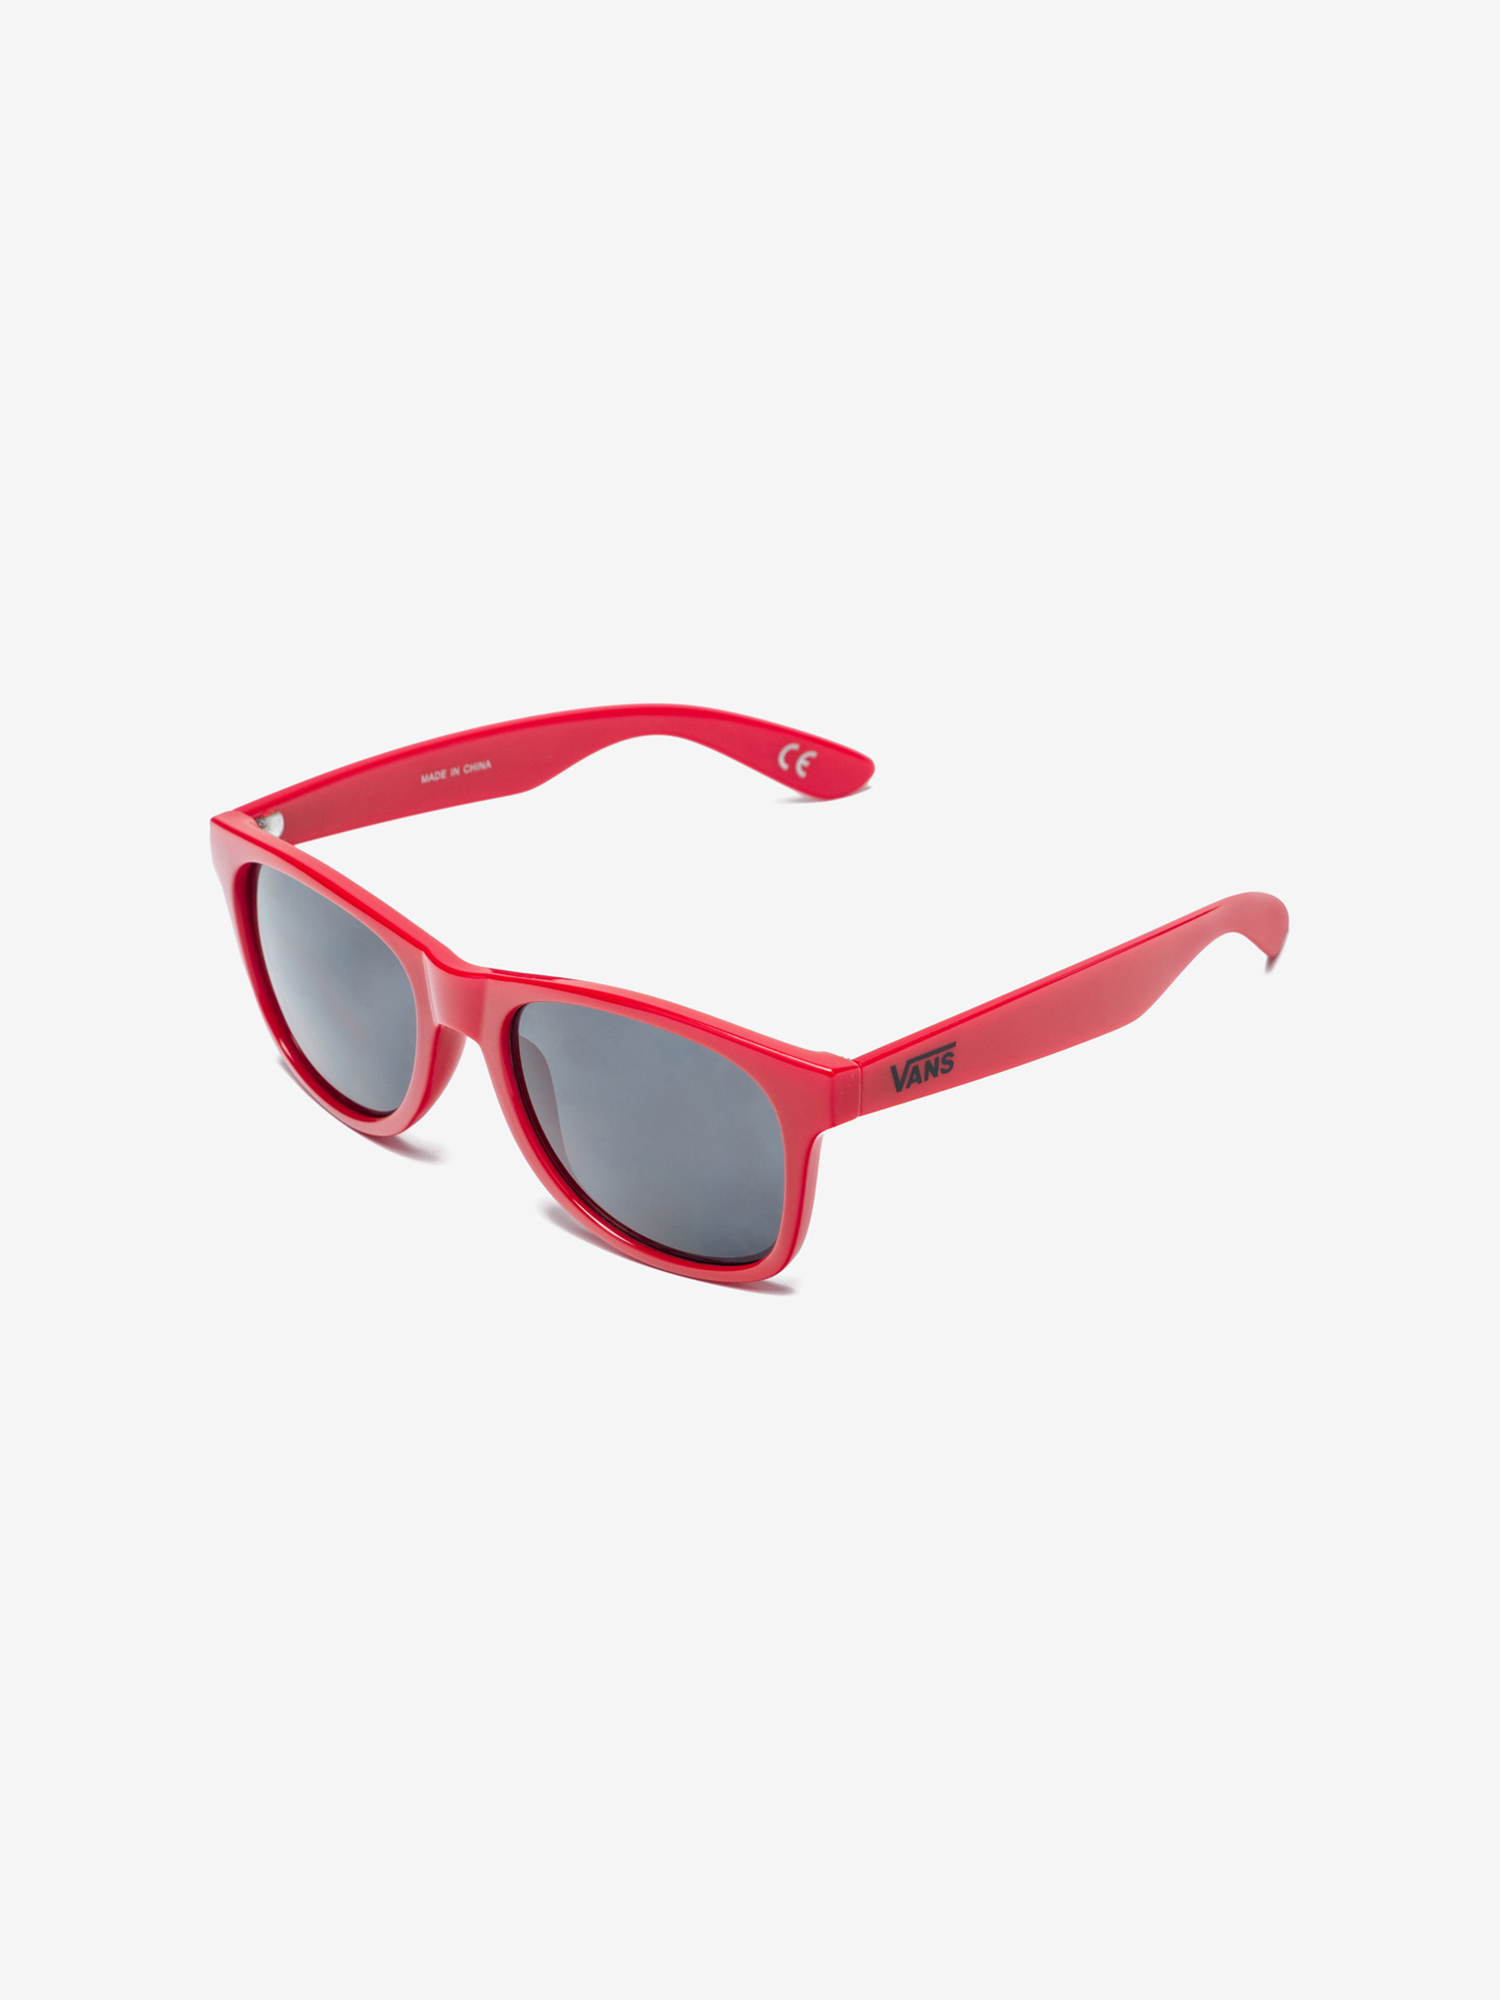 Brýle Vans Mn Spicoli 4 Shades Racing Red (2)